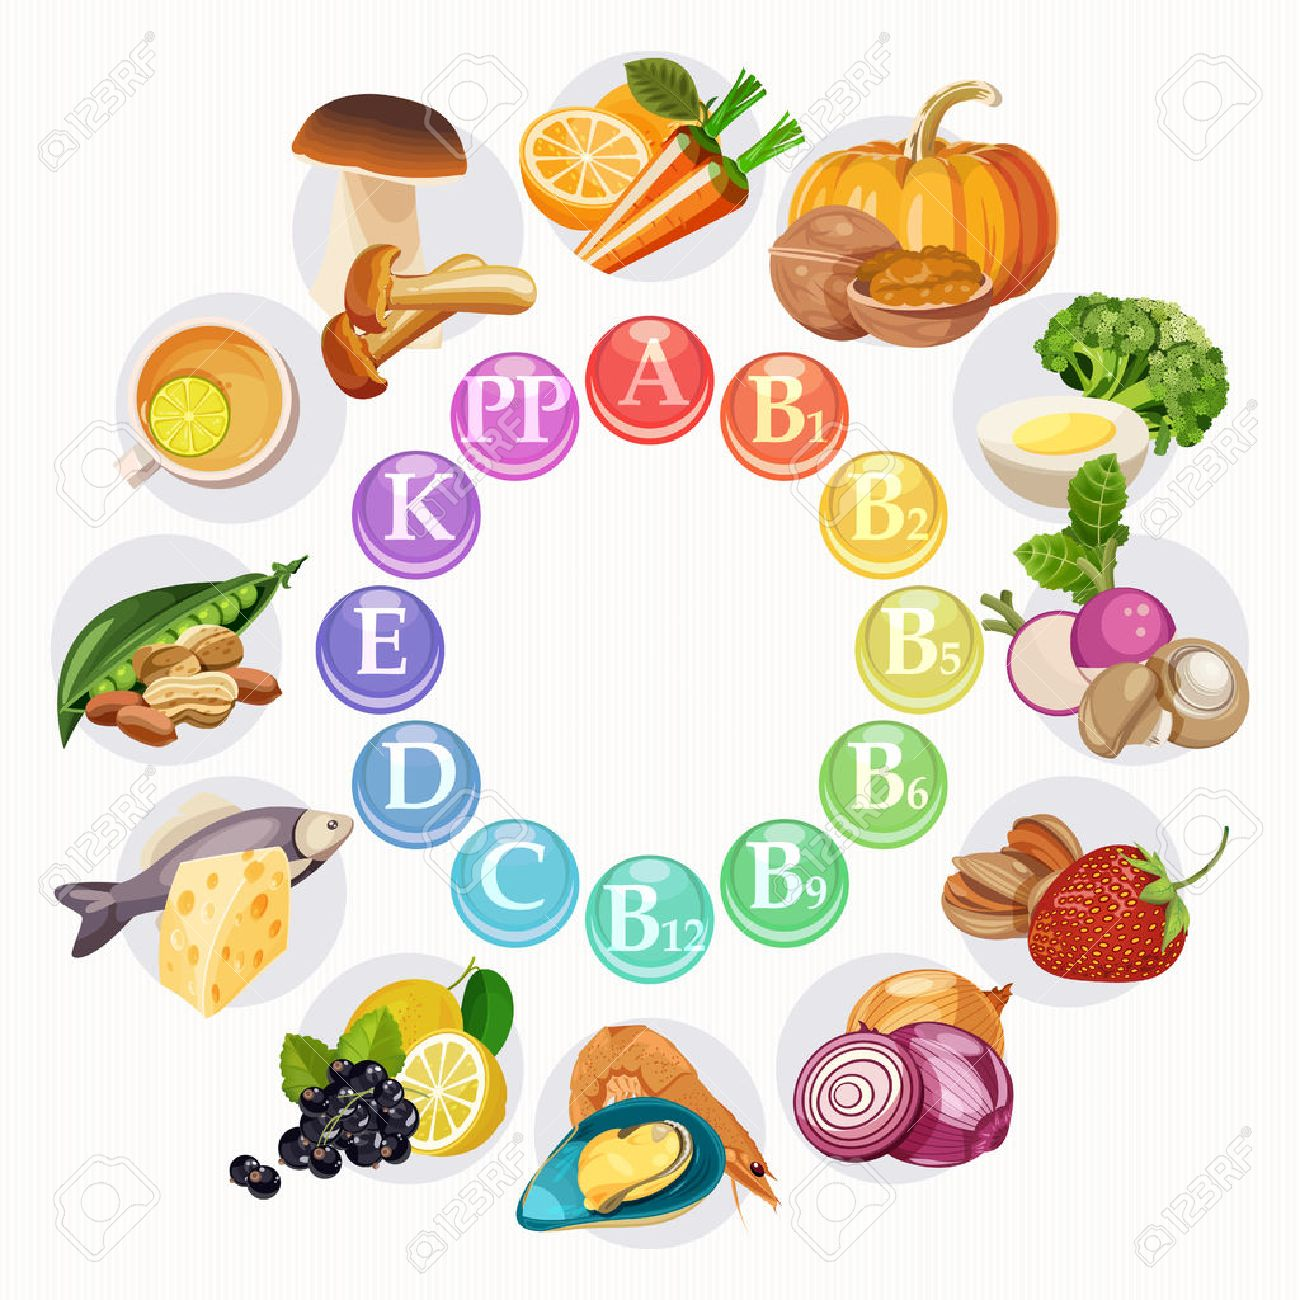 Vector illustration of vitamin groups in colored wheel. Light background - 51018560